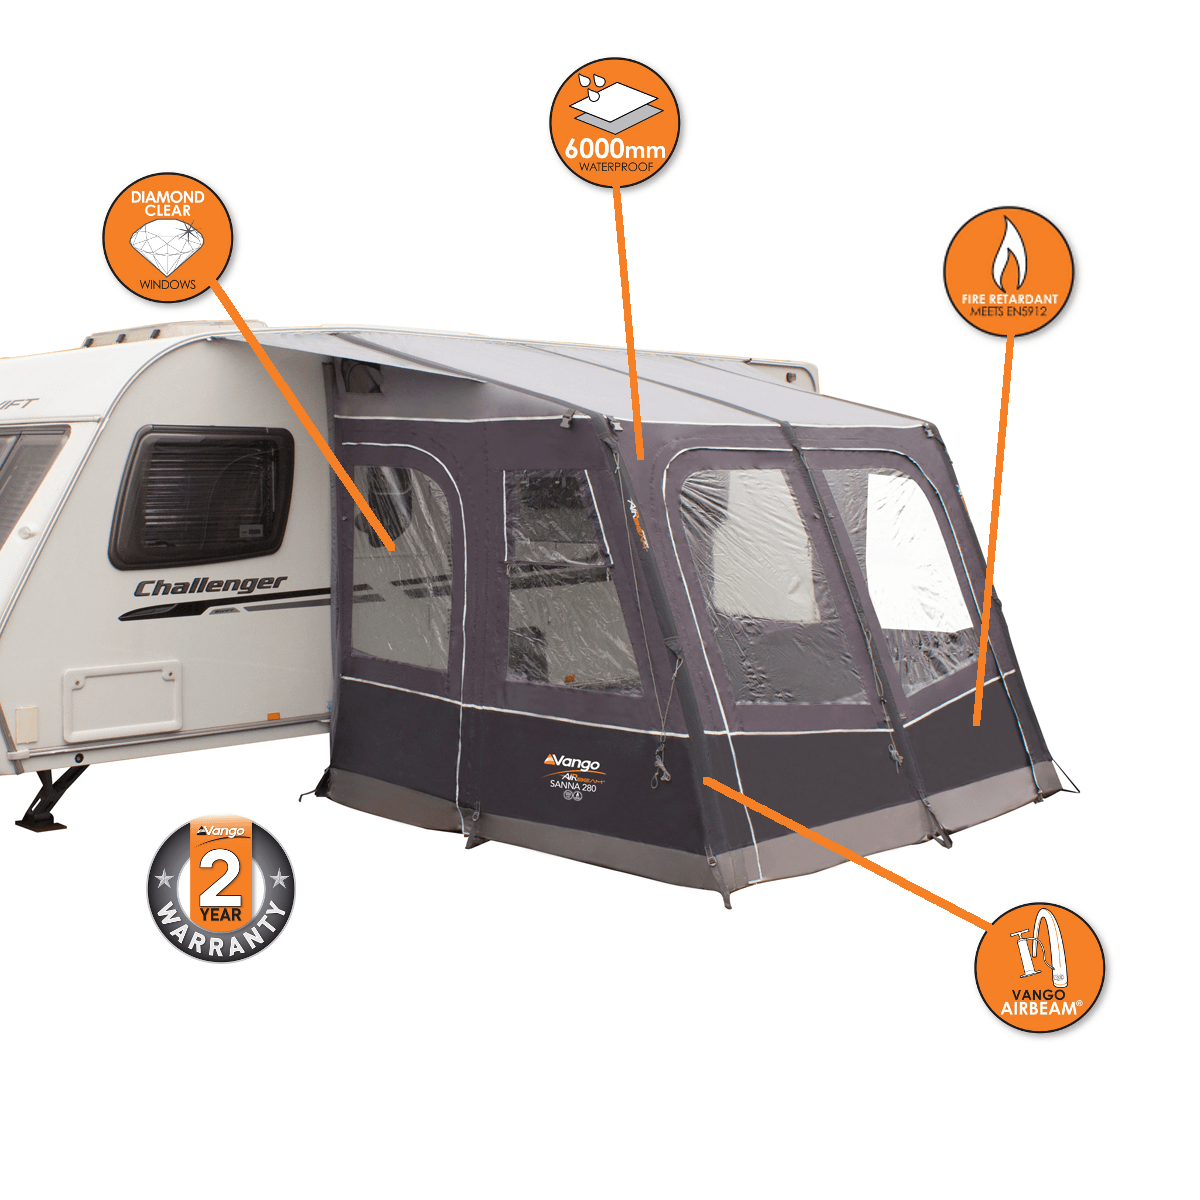 Vango Sanna 280 Inflatable Awning Prices Compared